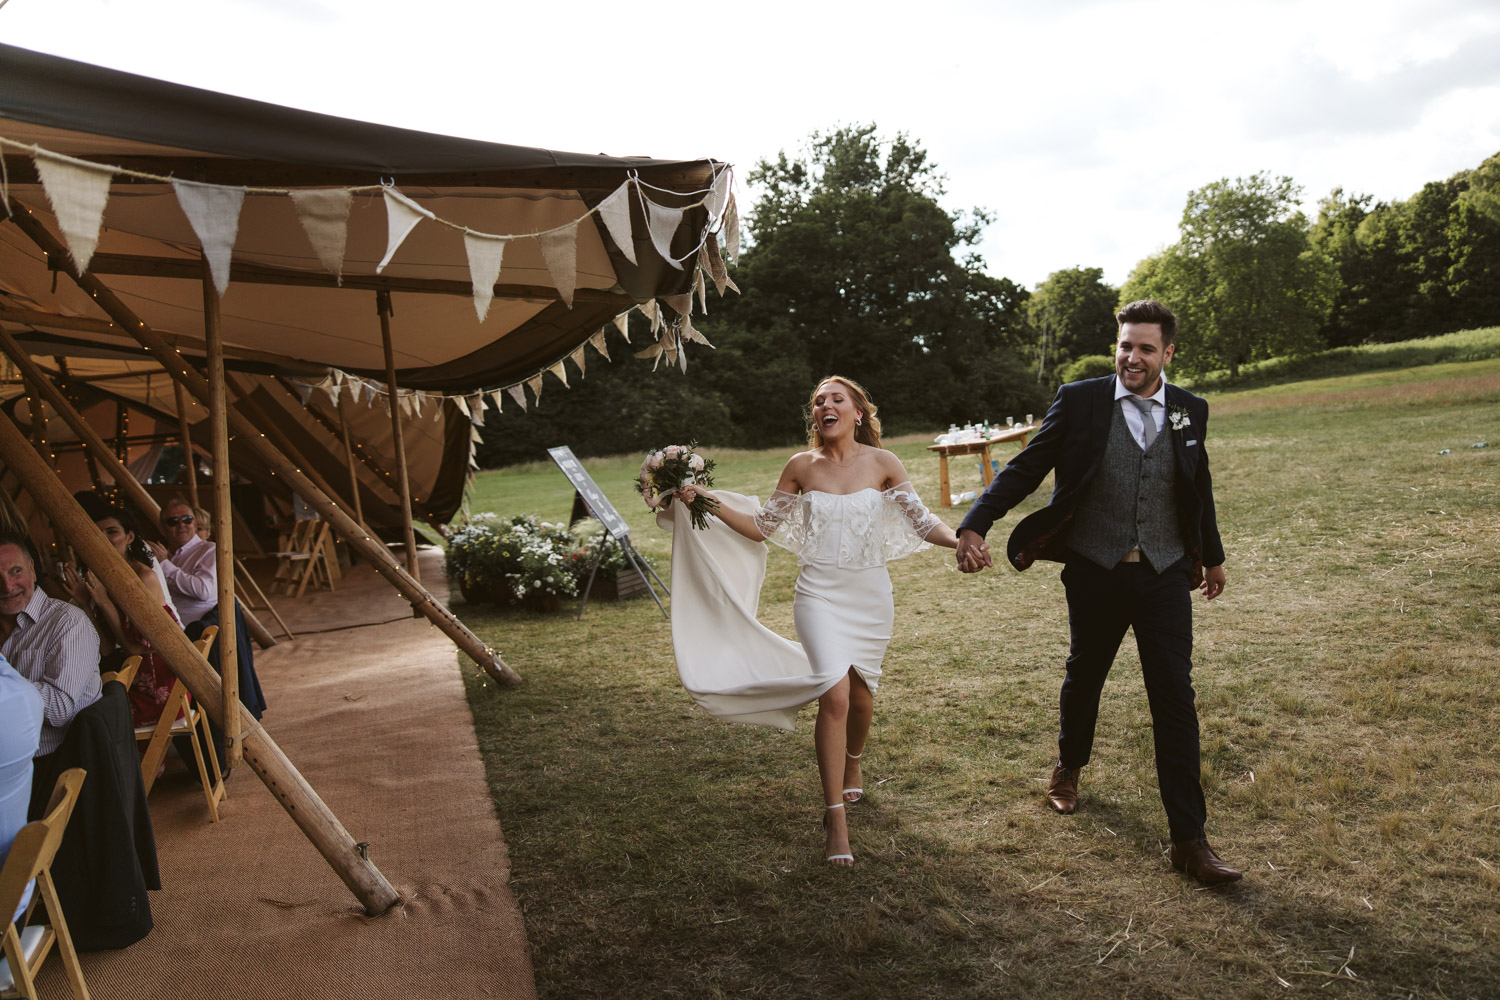 the bride and groom look really happy as they are welcomed into the tipi